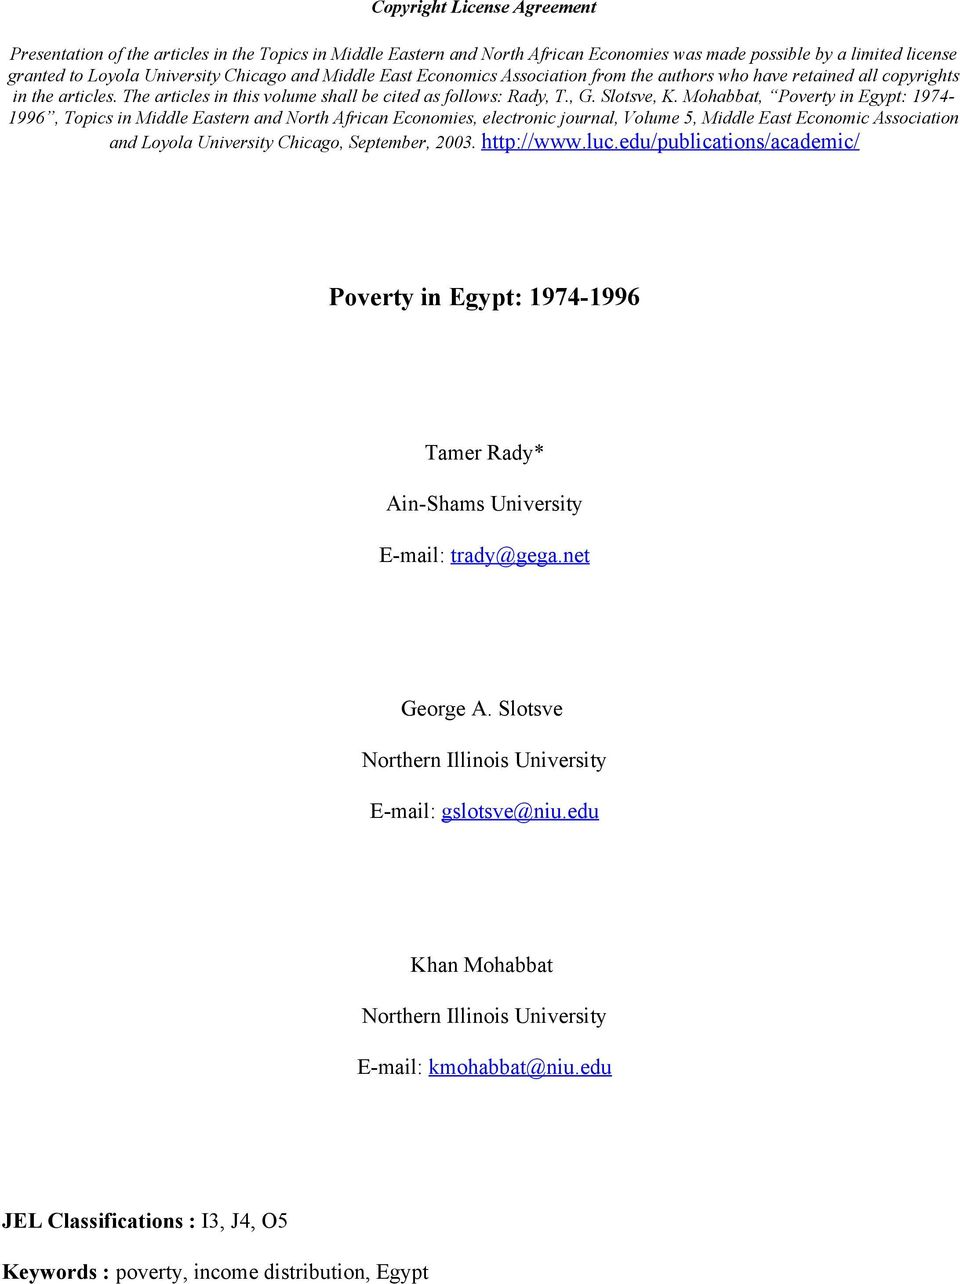 Mohabbat, Poverty in Egypt: 1974-1996, Topics in Middle Eastern and North African Economies, electronic journal, Volume 5, Middle East Economic Association and Loyola University Chicago, September,